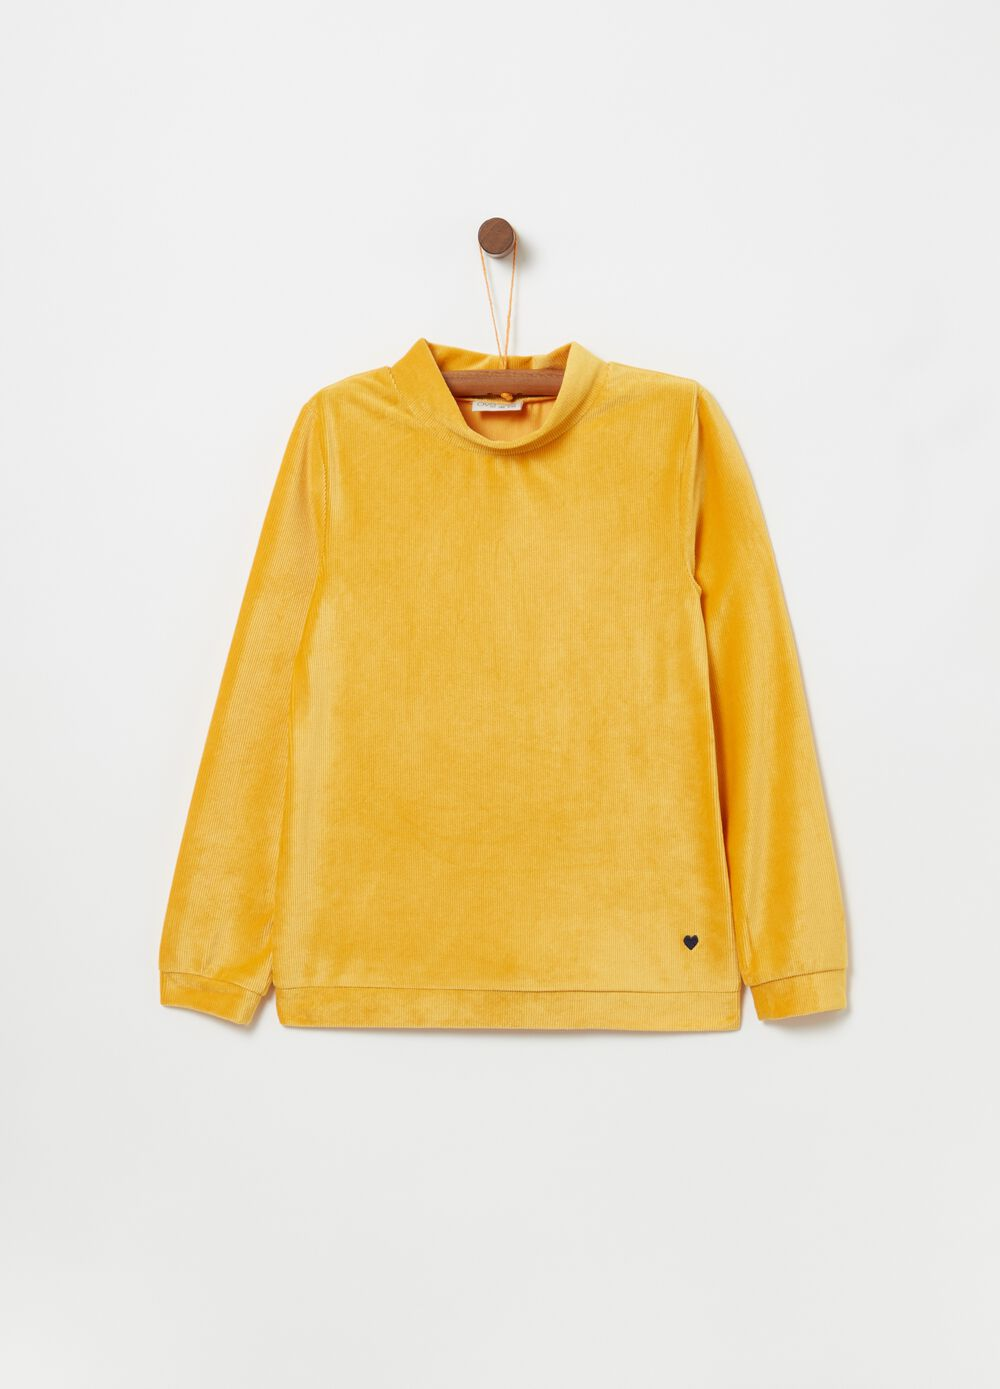 T-shirt with high neck and long sleeves